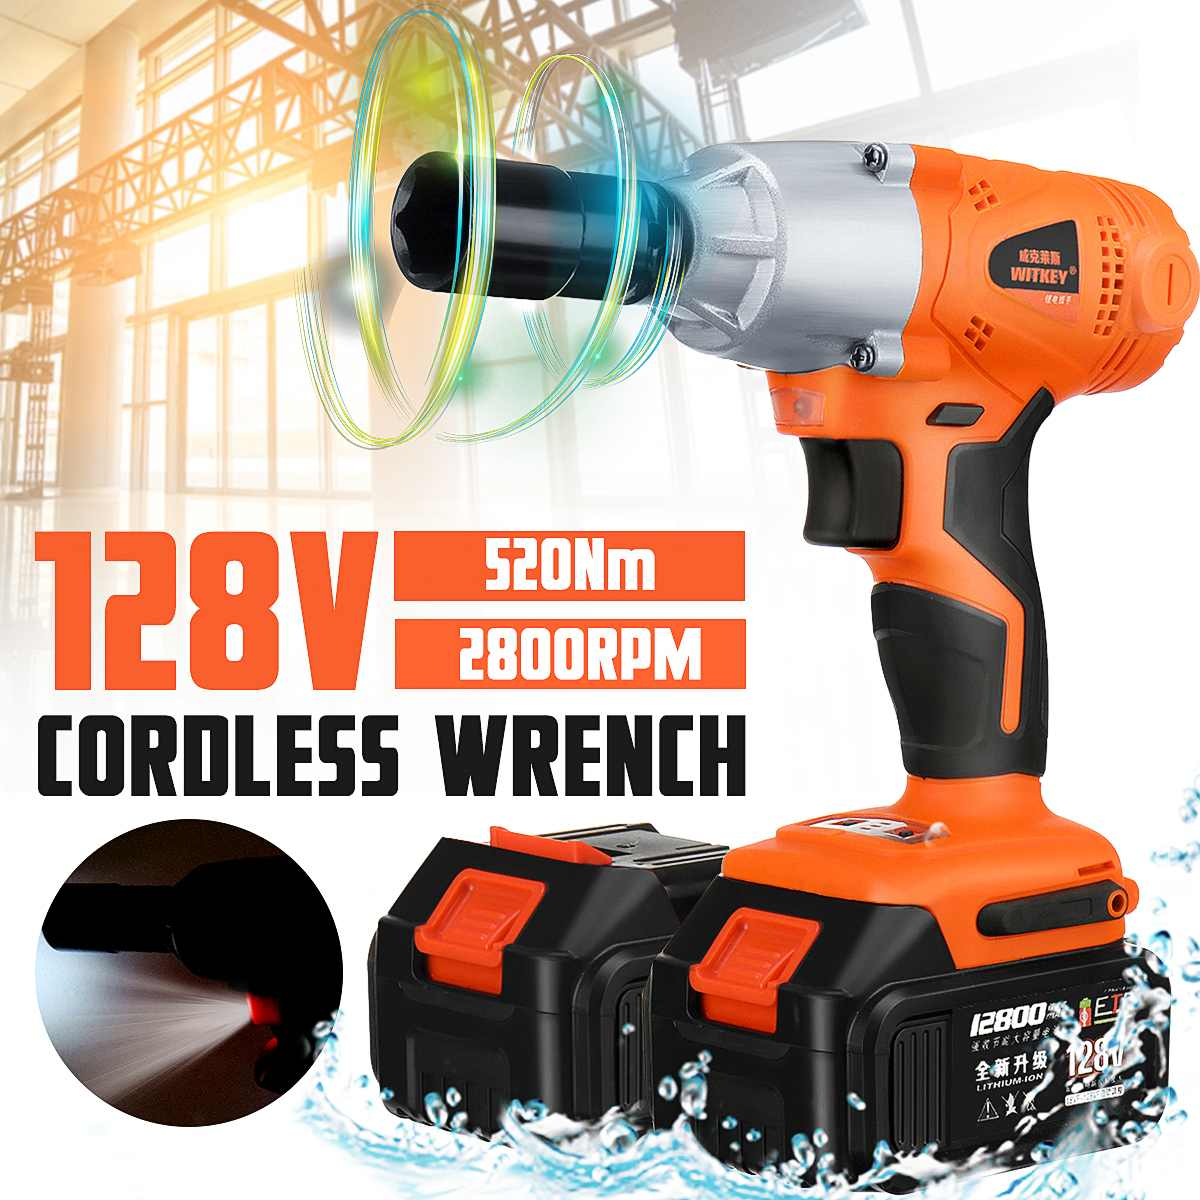 Brushless Cordless Electric Wrench Impact Socket Wrench 128V 520Nm Li Battery Hand Drill Installation Power ToolsBrushless Cordless Electric Wrench Impact Socket Wrench 128V 520Nm Li Battery Hand Drill Installation Power Tools